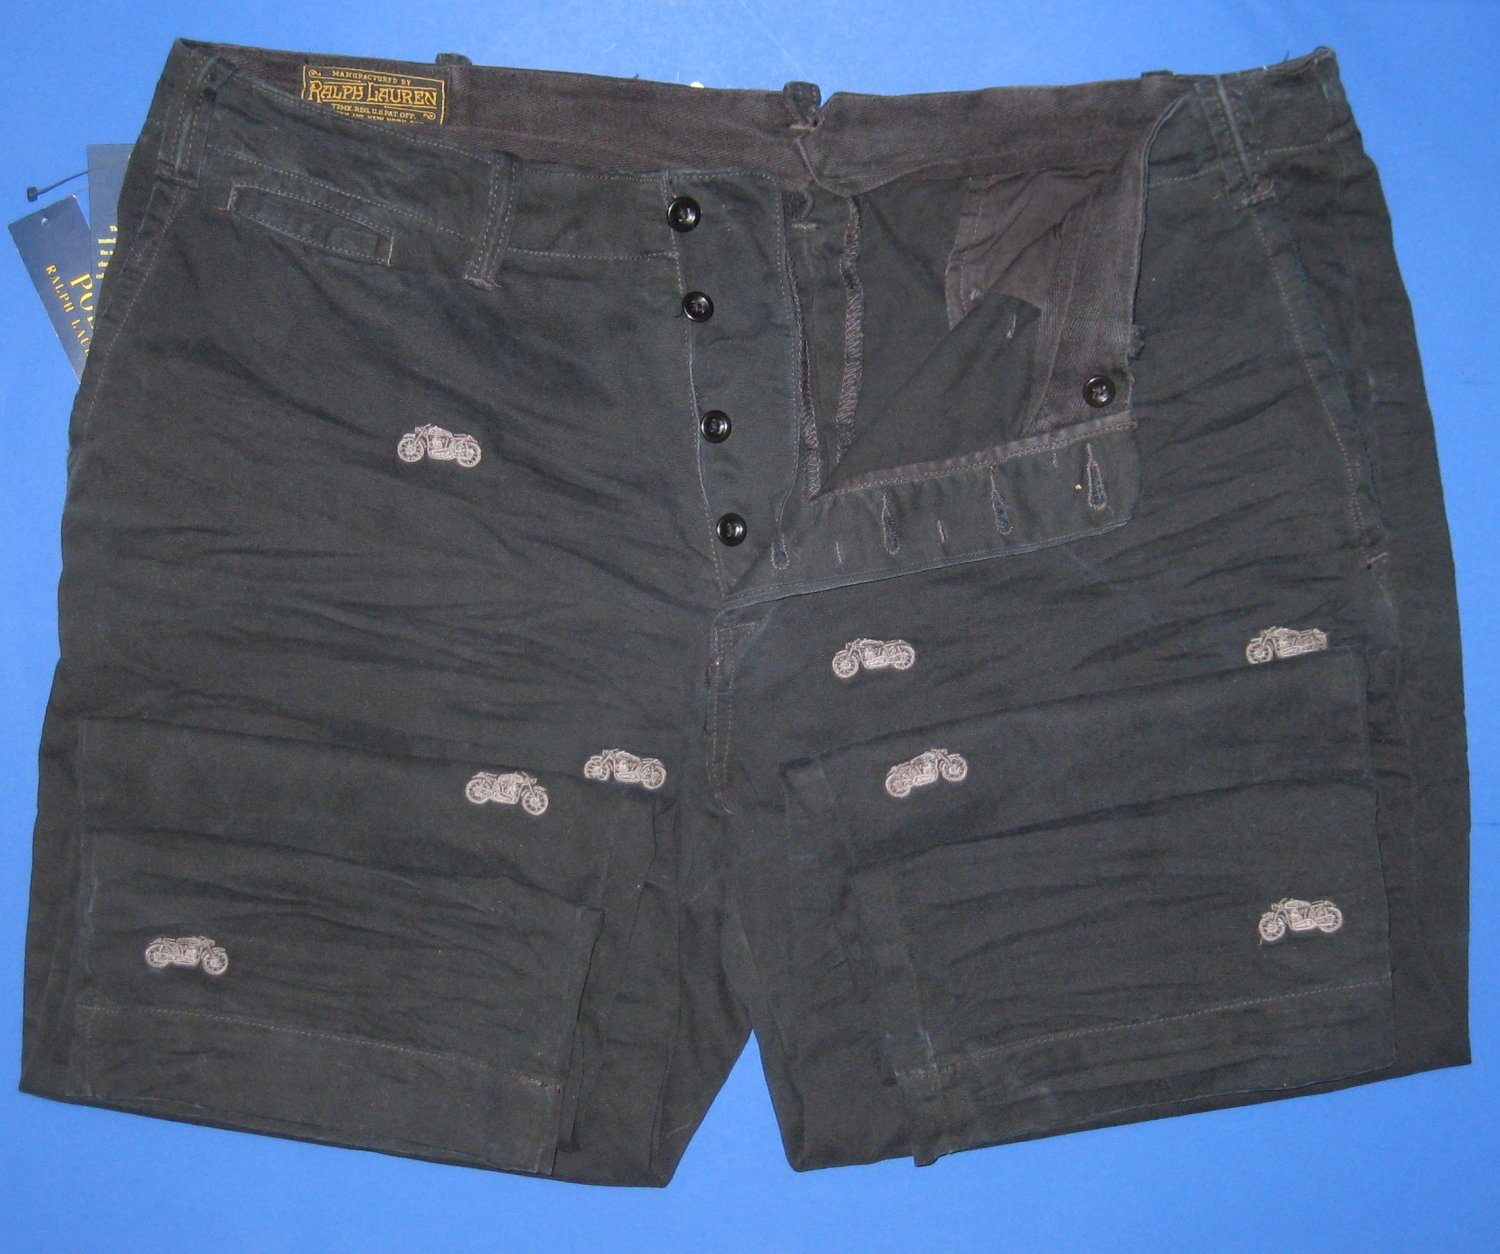 NWT Polo Ralph Lauren Black Embroidered Motorcycle Distressed Cotton Pants 38x30